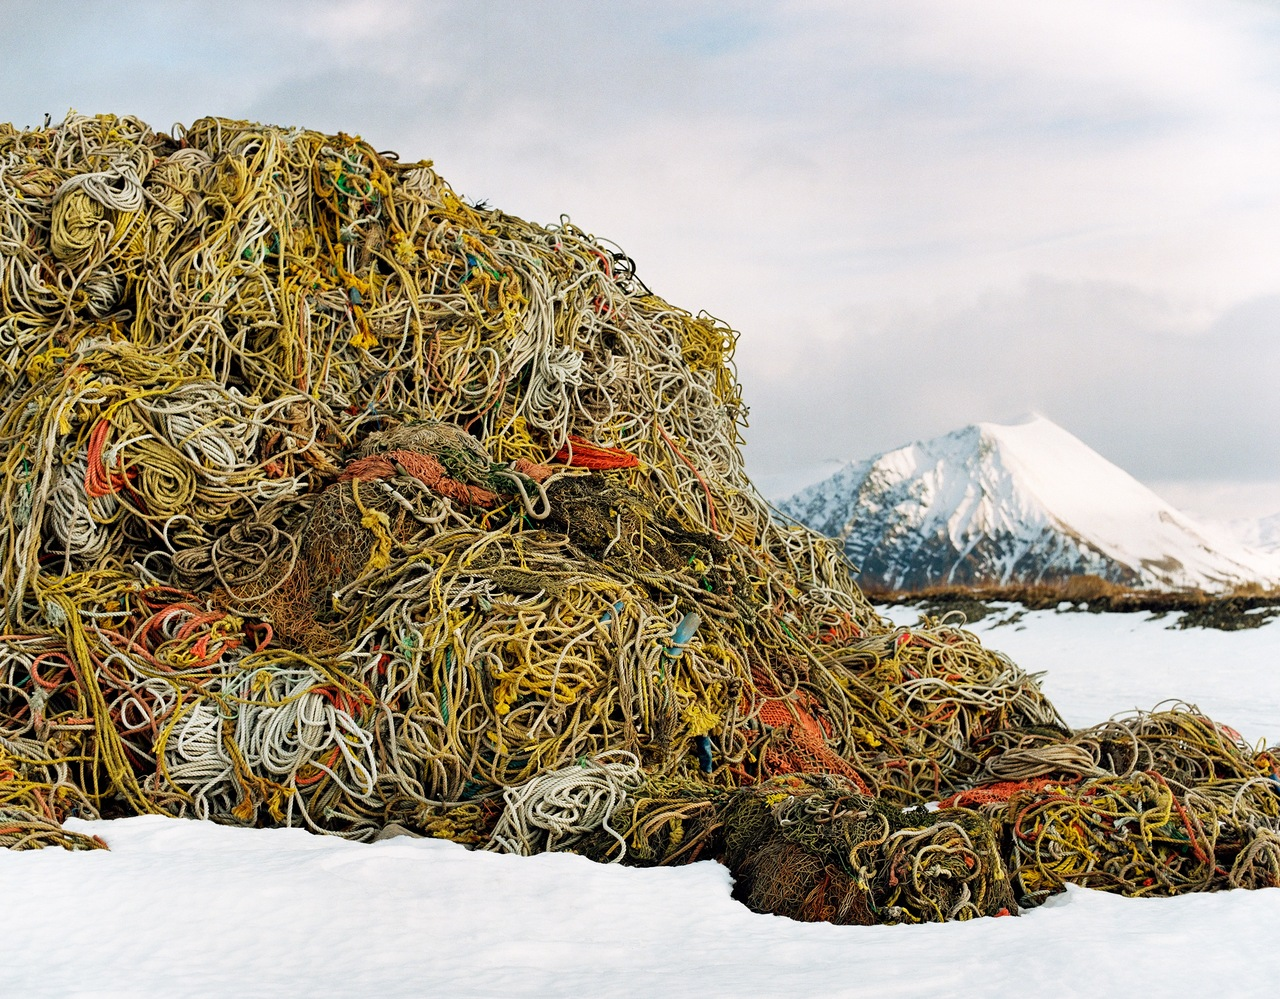 paddle8: Corey Arnold, Line Mountain (Dutch Harbor, Alaska), 2012 Fisherman turned photographer, Corey Arnold makes mountains out of fishing-line. Our auction benefitting NURTUREart ends tomorrow. Lines lines lines